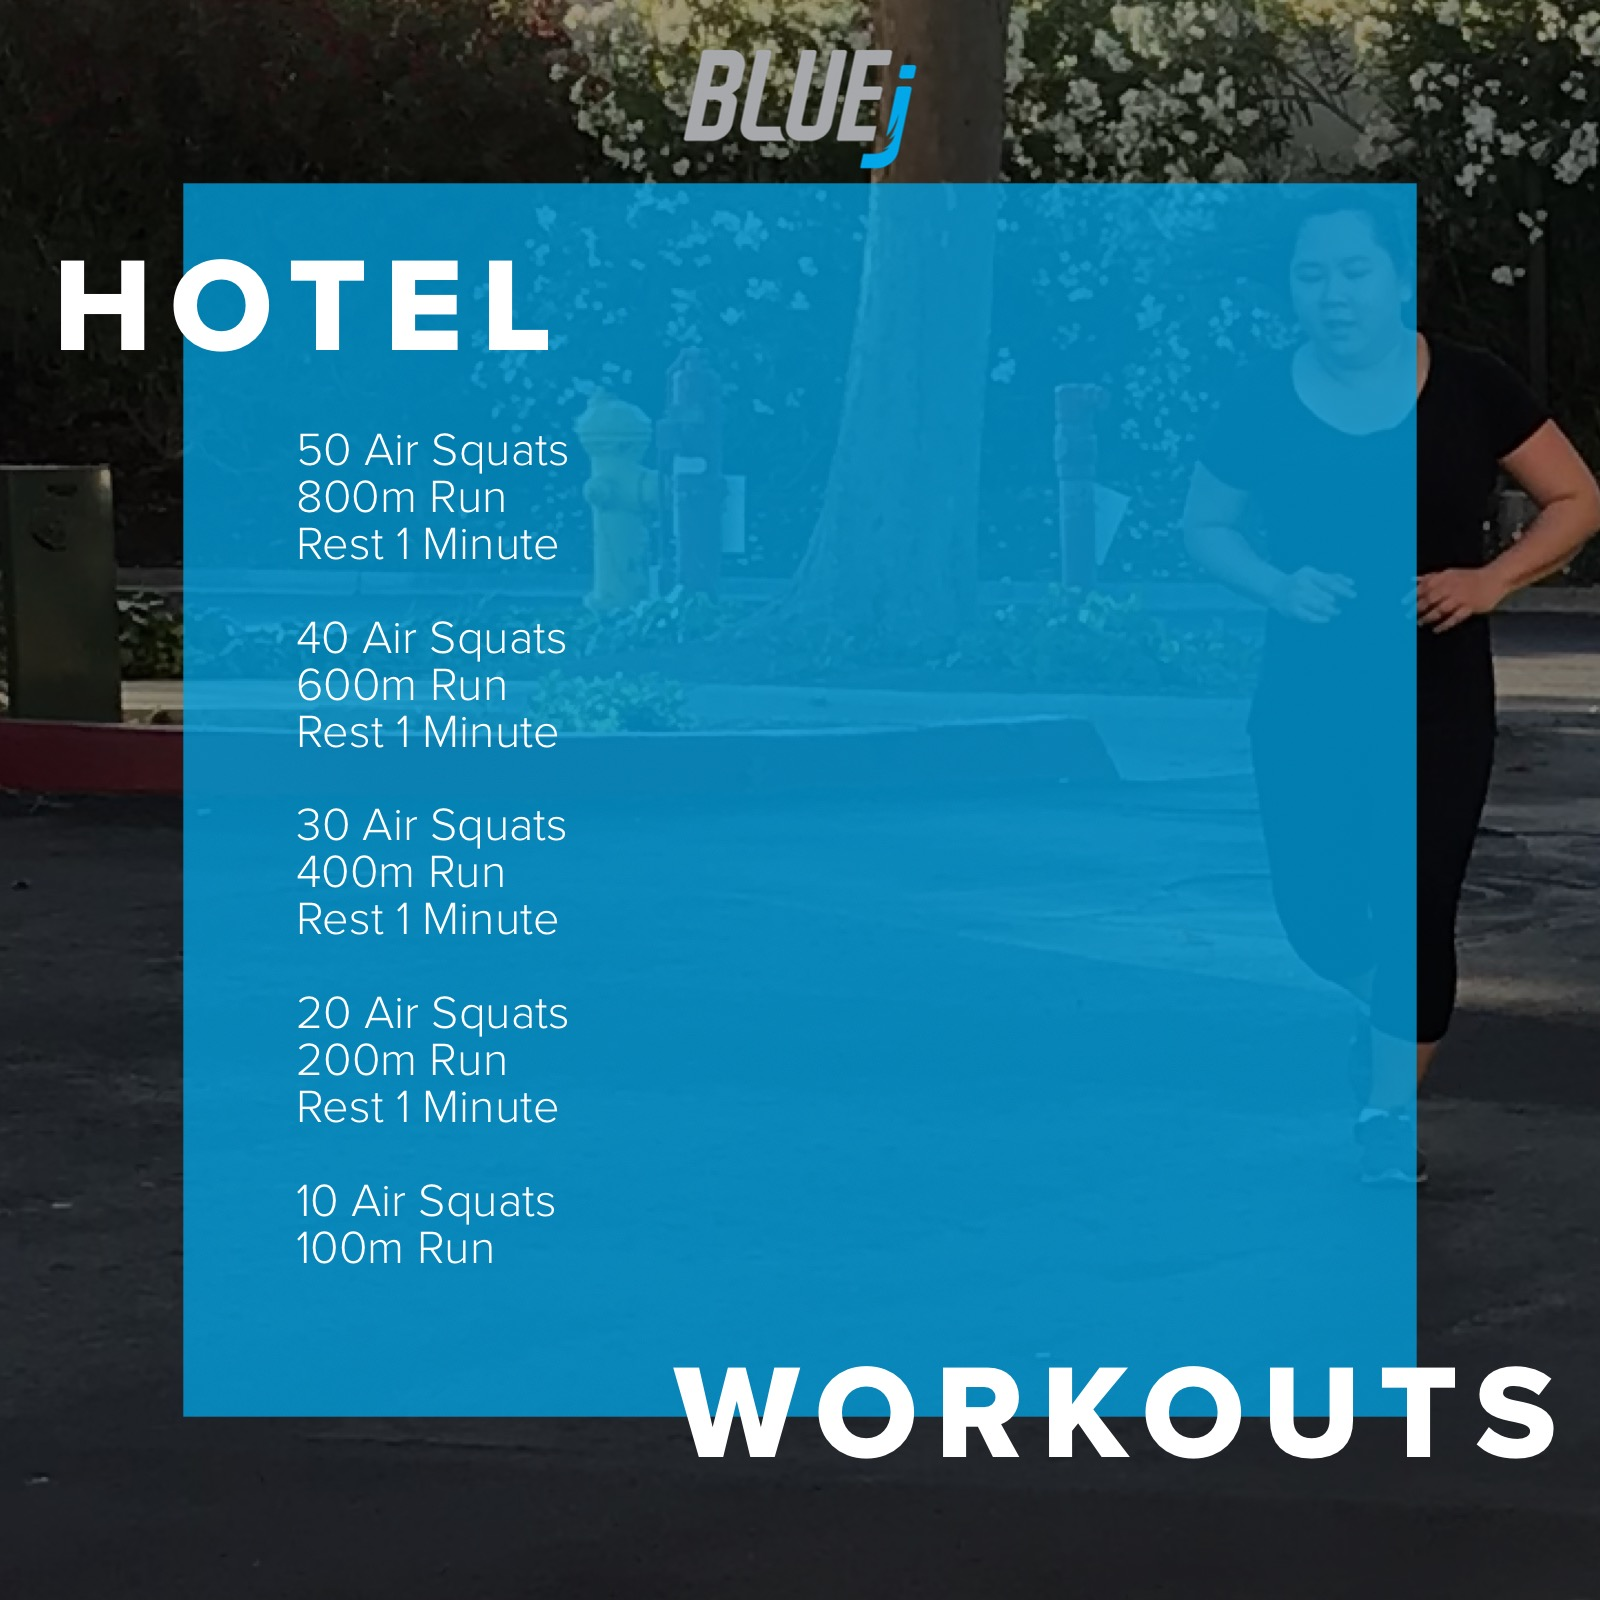 Hotel Workout 8:19.jpeg